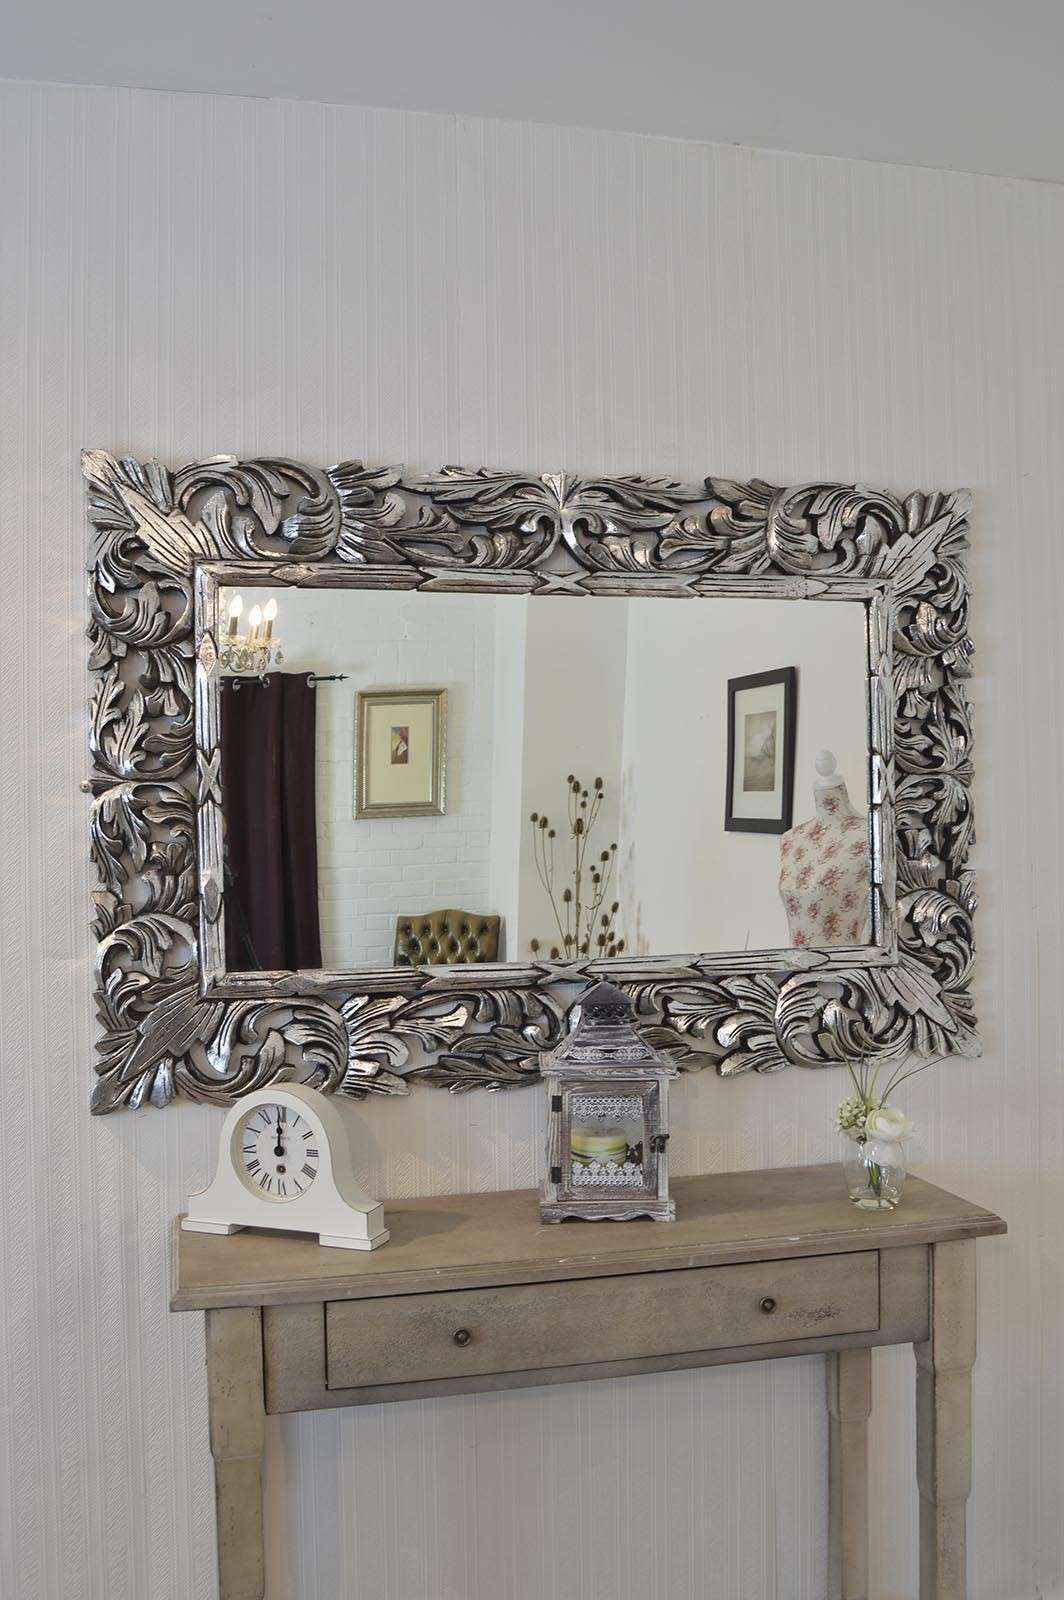 4ft11 X 3ft4 Large Silver Carved Ornate Wall Mounted Mirror Wood Intended For Silver Ornate Mirror (Photo 5 of 15)